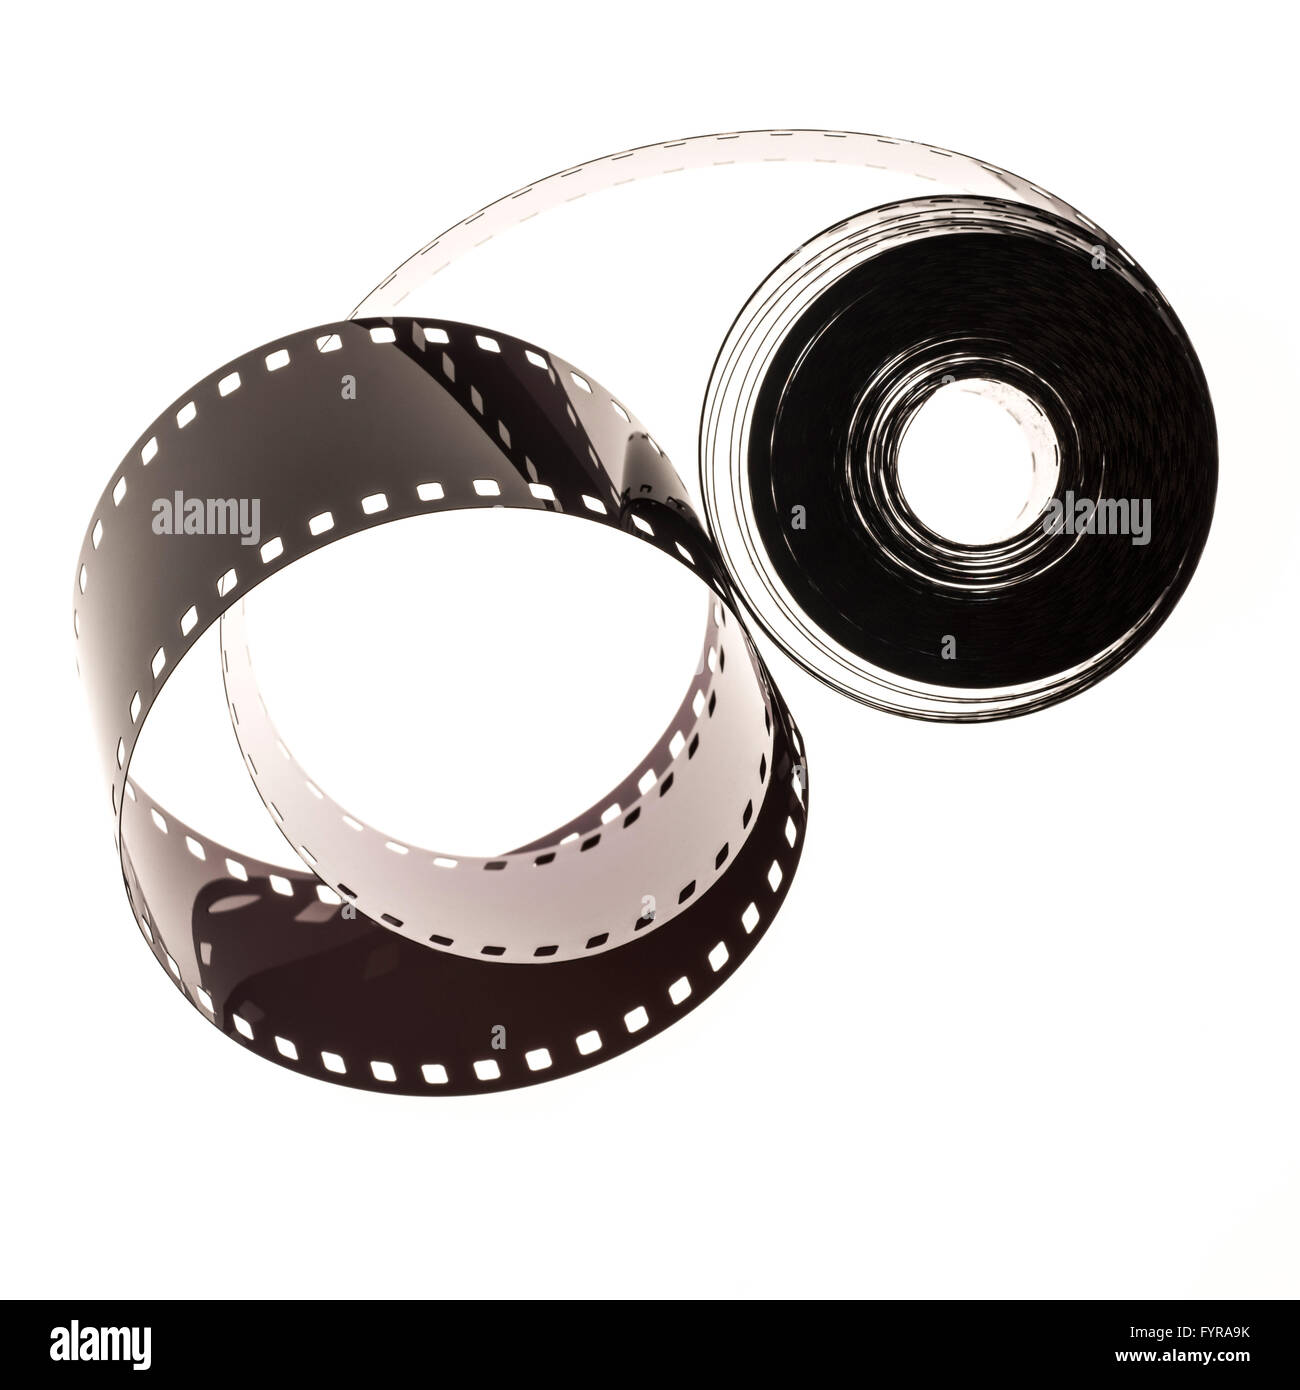 35mm film strip as used in film and photography industries - Stock Image